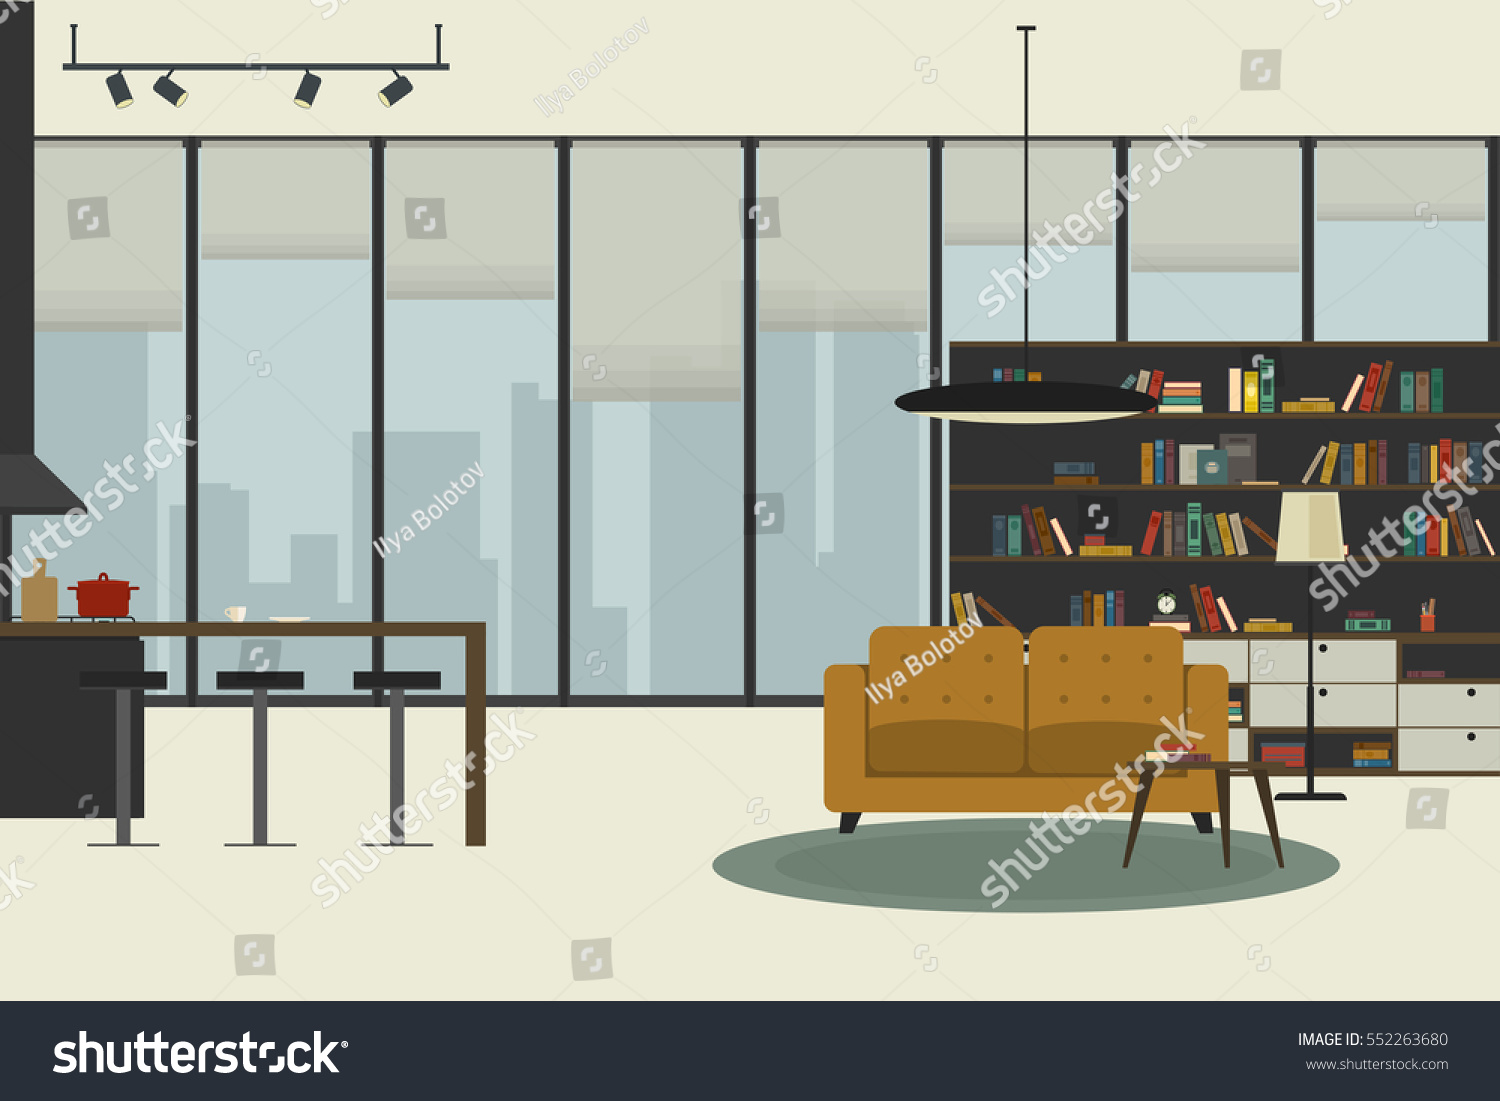 Open Space Living Room Apartment Inside Flat Style Open Space Stock Vector 552263680